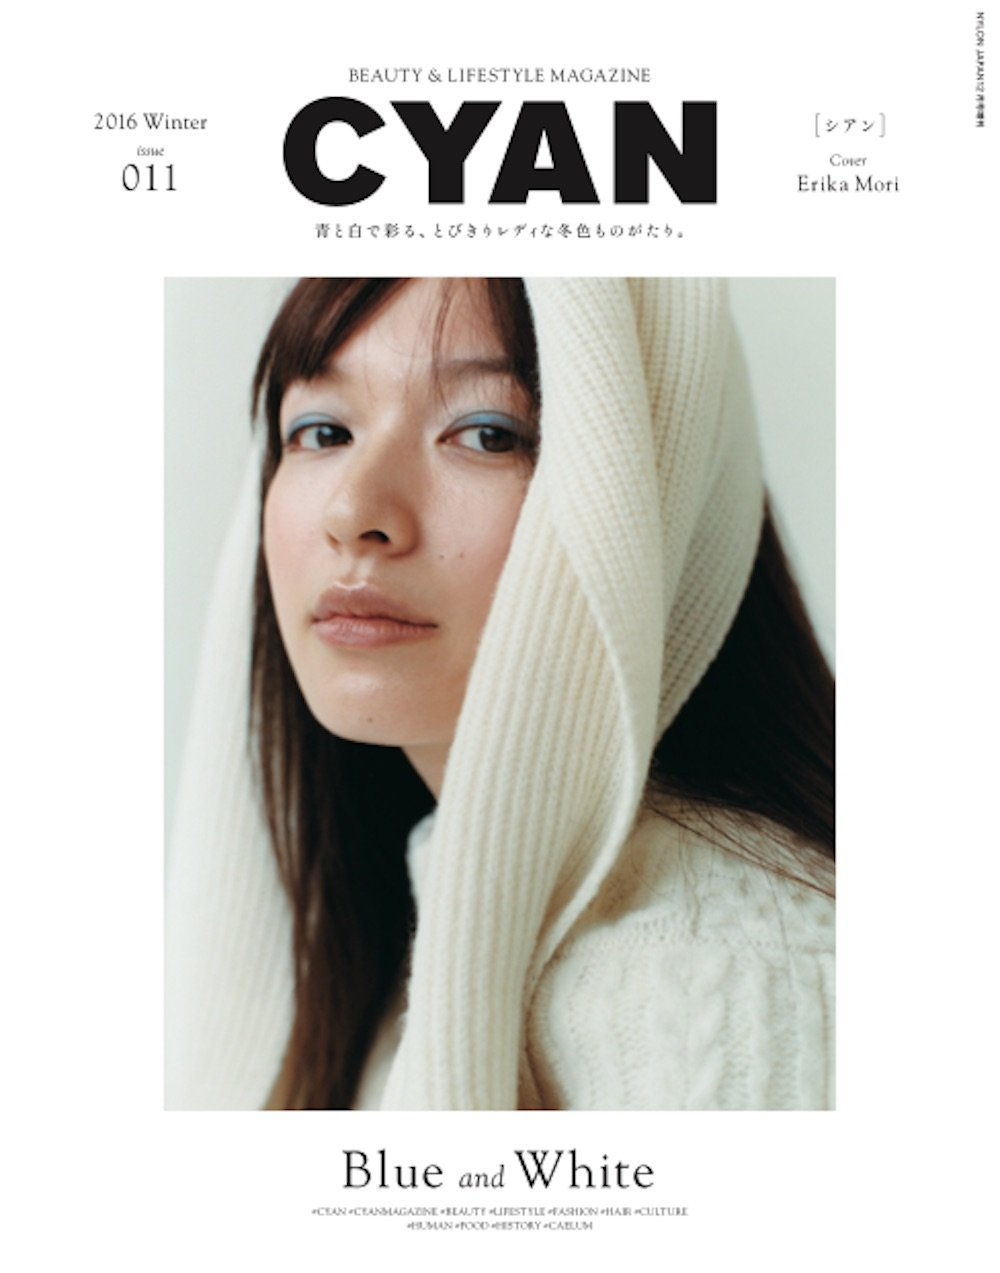 Read Online CYAN issue 011 WINTER ~ Japanese Fashion Magazine DECEMBER 2016 Issue [JAPANESE EDITION] Tracked & Insured Shipping DEC 12 ebook